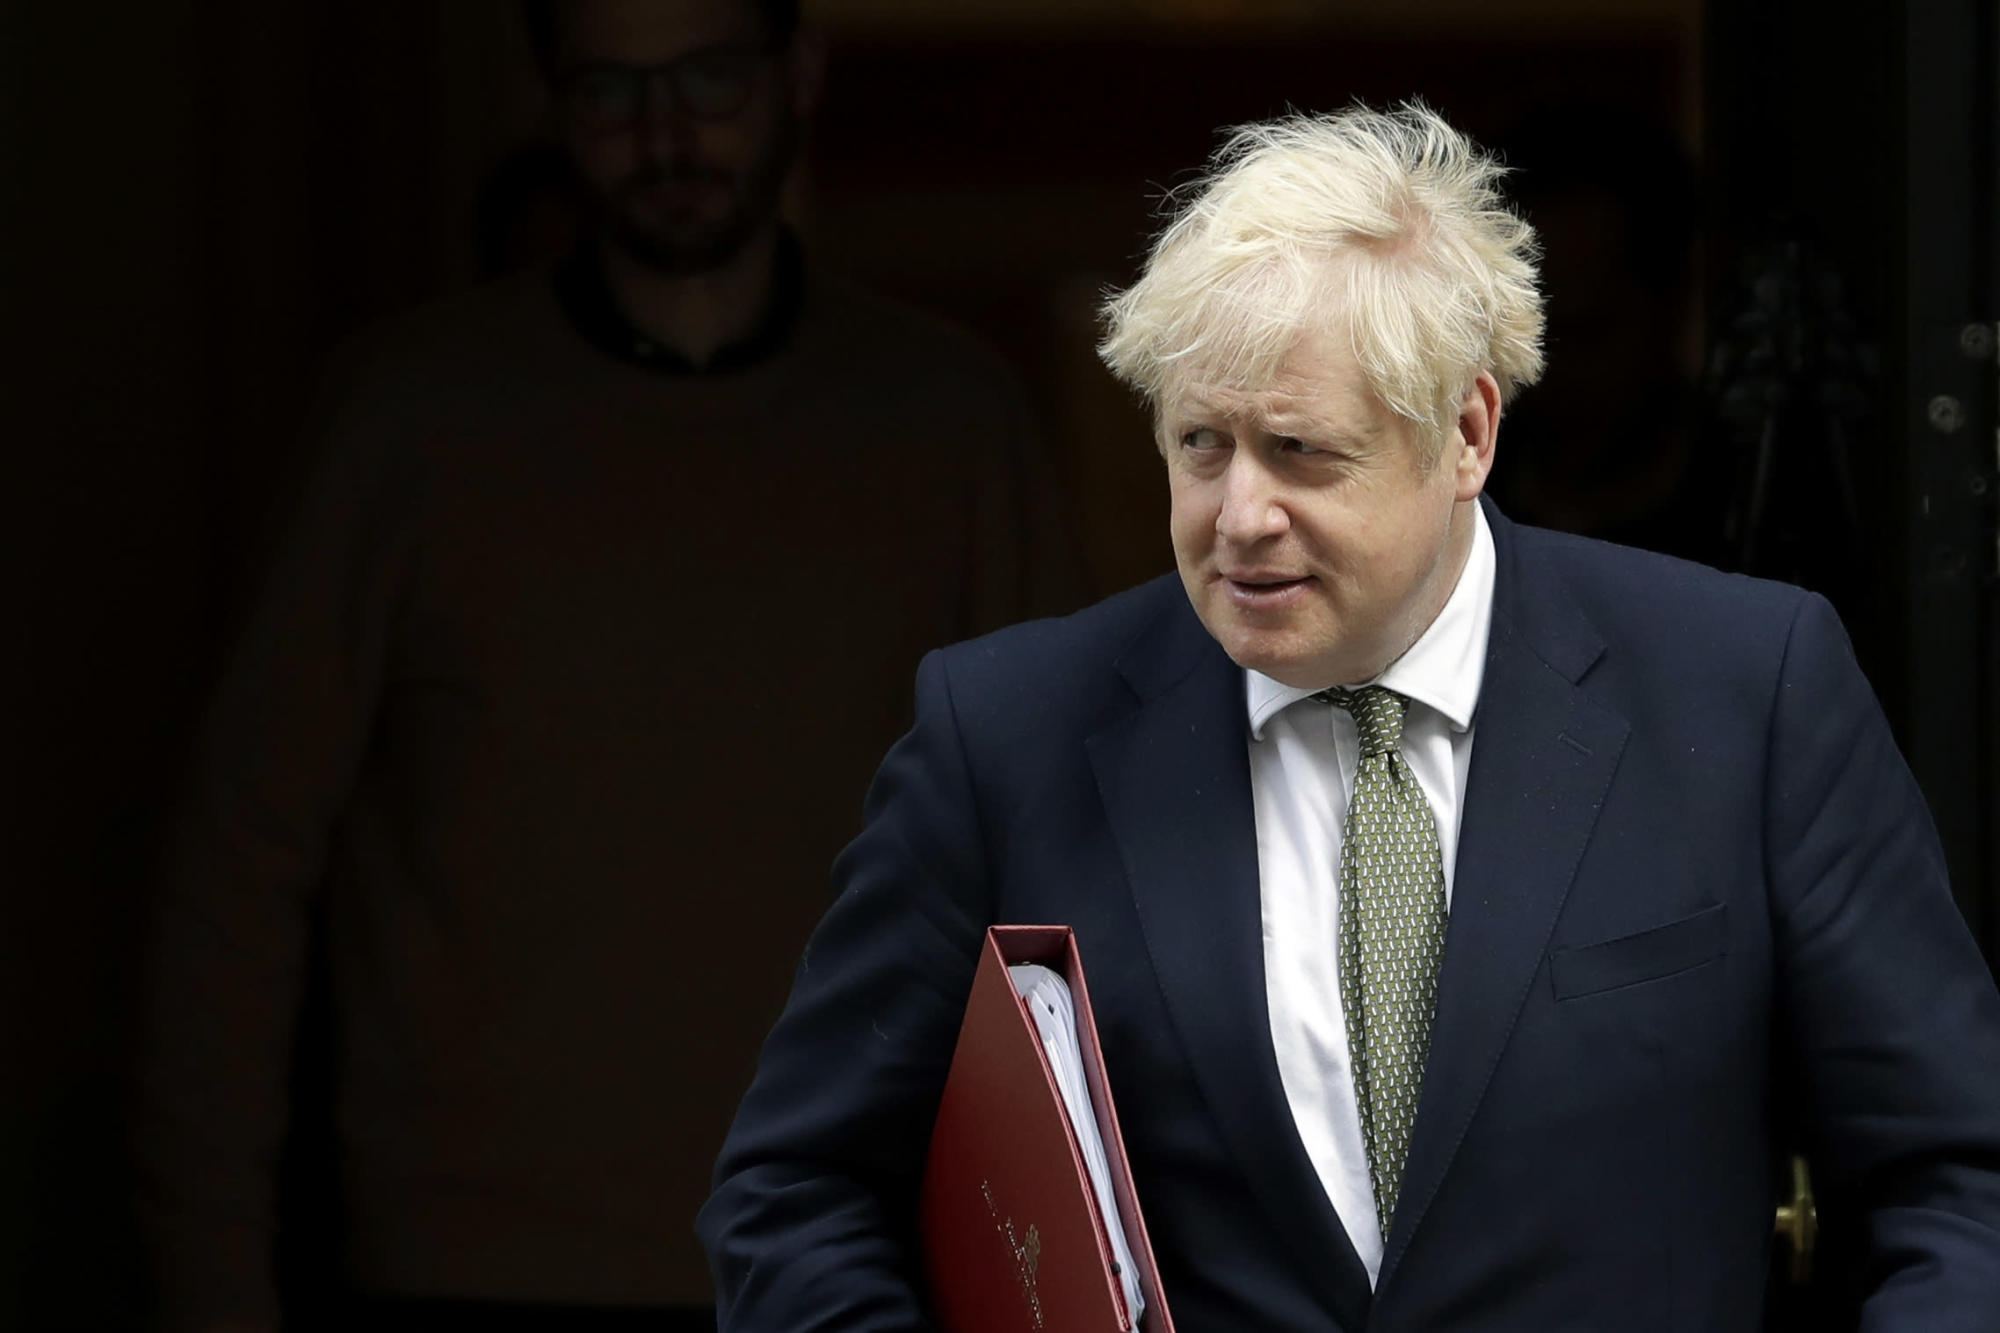 As virus surges, isolated UK leader Johnson faces many foes